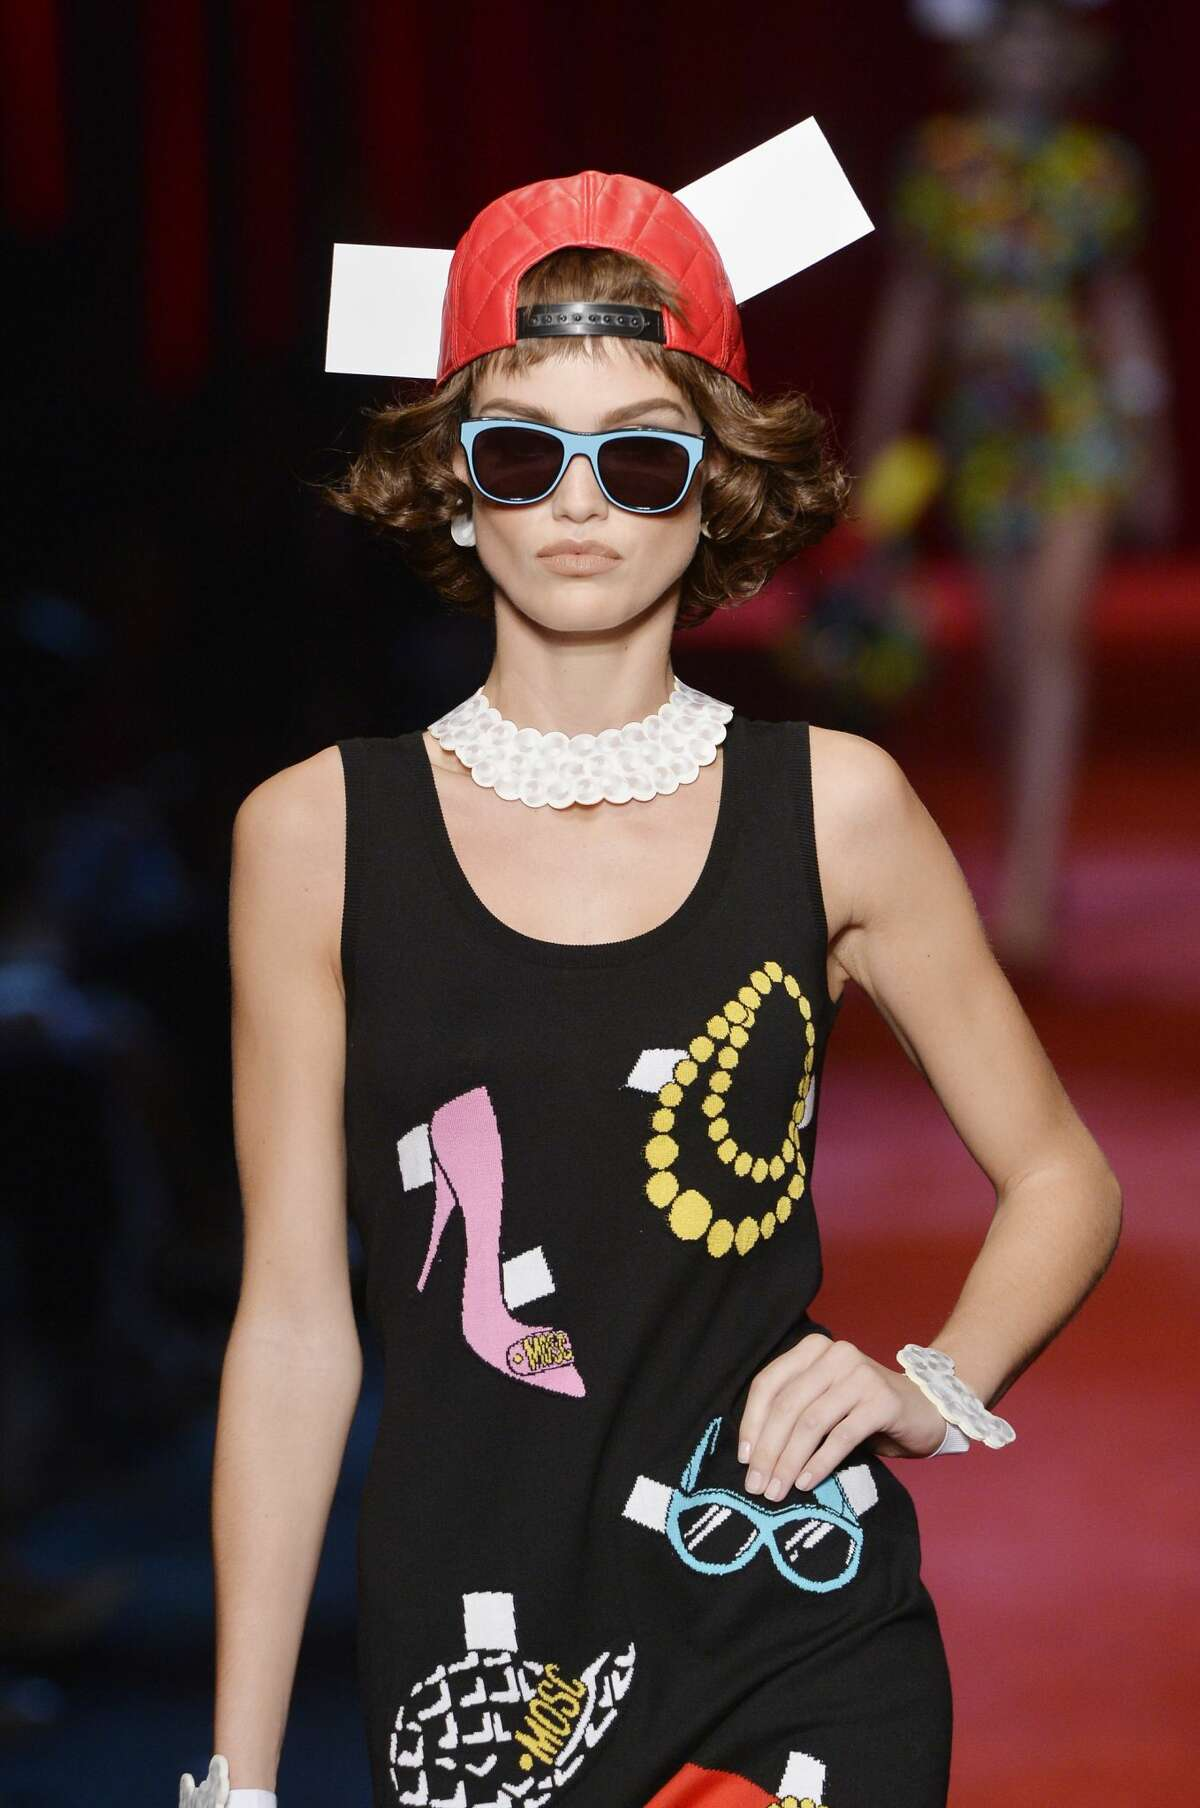 MILAN, ITALY - SEPTEMBER 22: A model walks the runway at the Moschino Spring Summer 2017 fashion show during Milan Fashion Week on September 22, 2016 in Milan, Italy. (Photo by Catwalking/Getty Images)